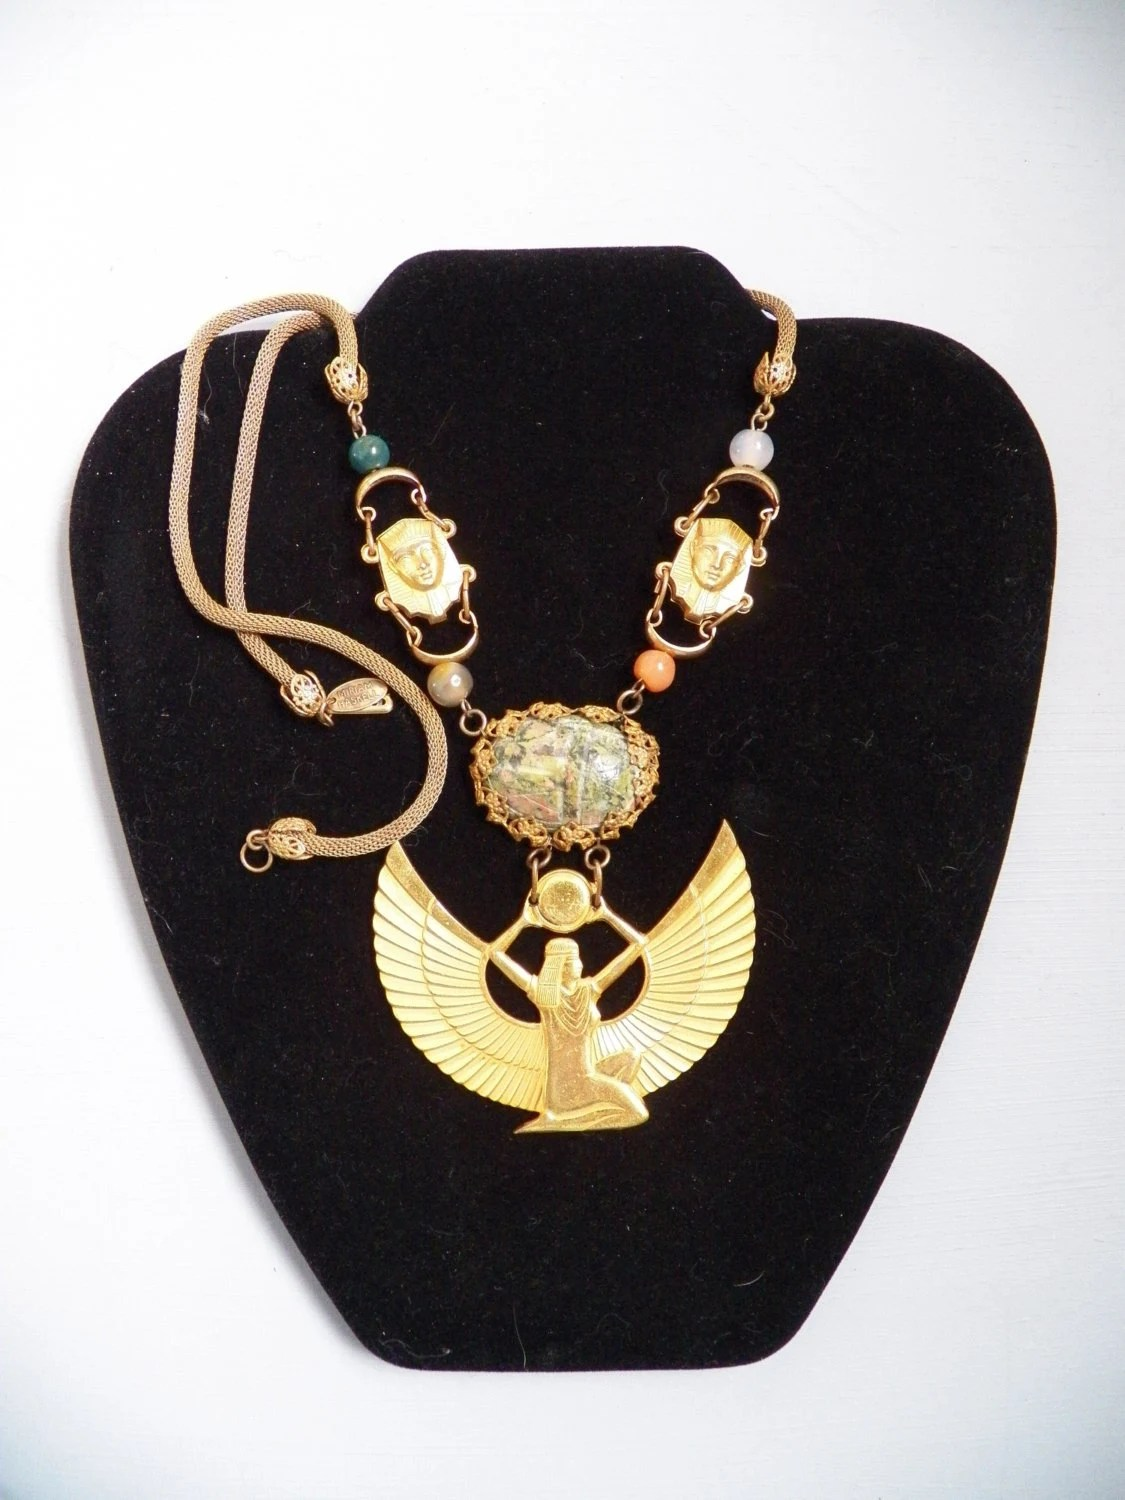 Items Similar To Vintage Signed Miriam Haskell 9k Gilt